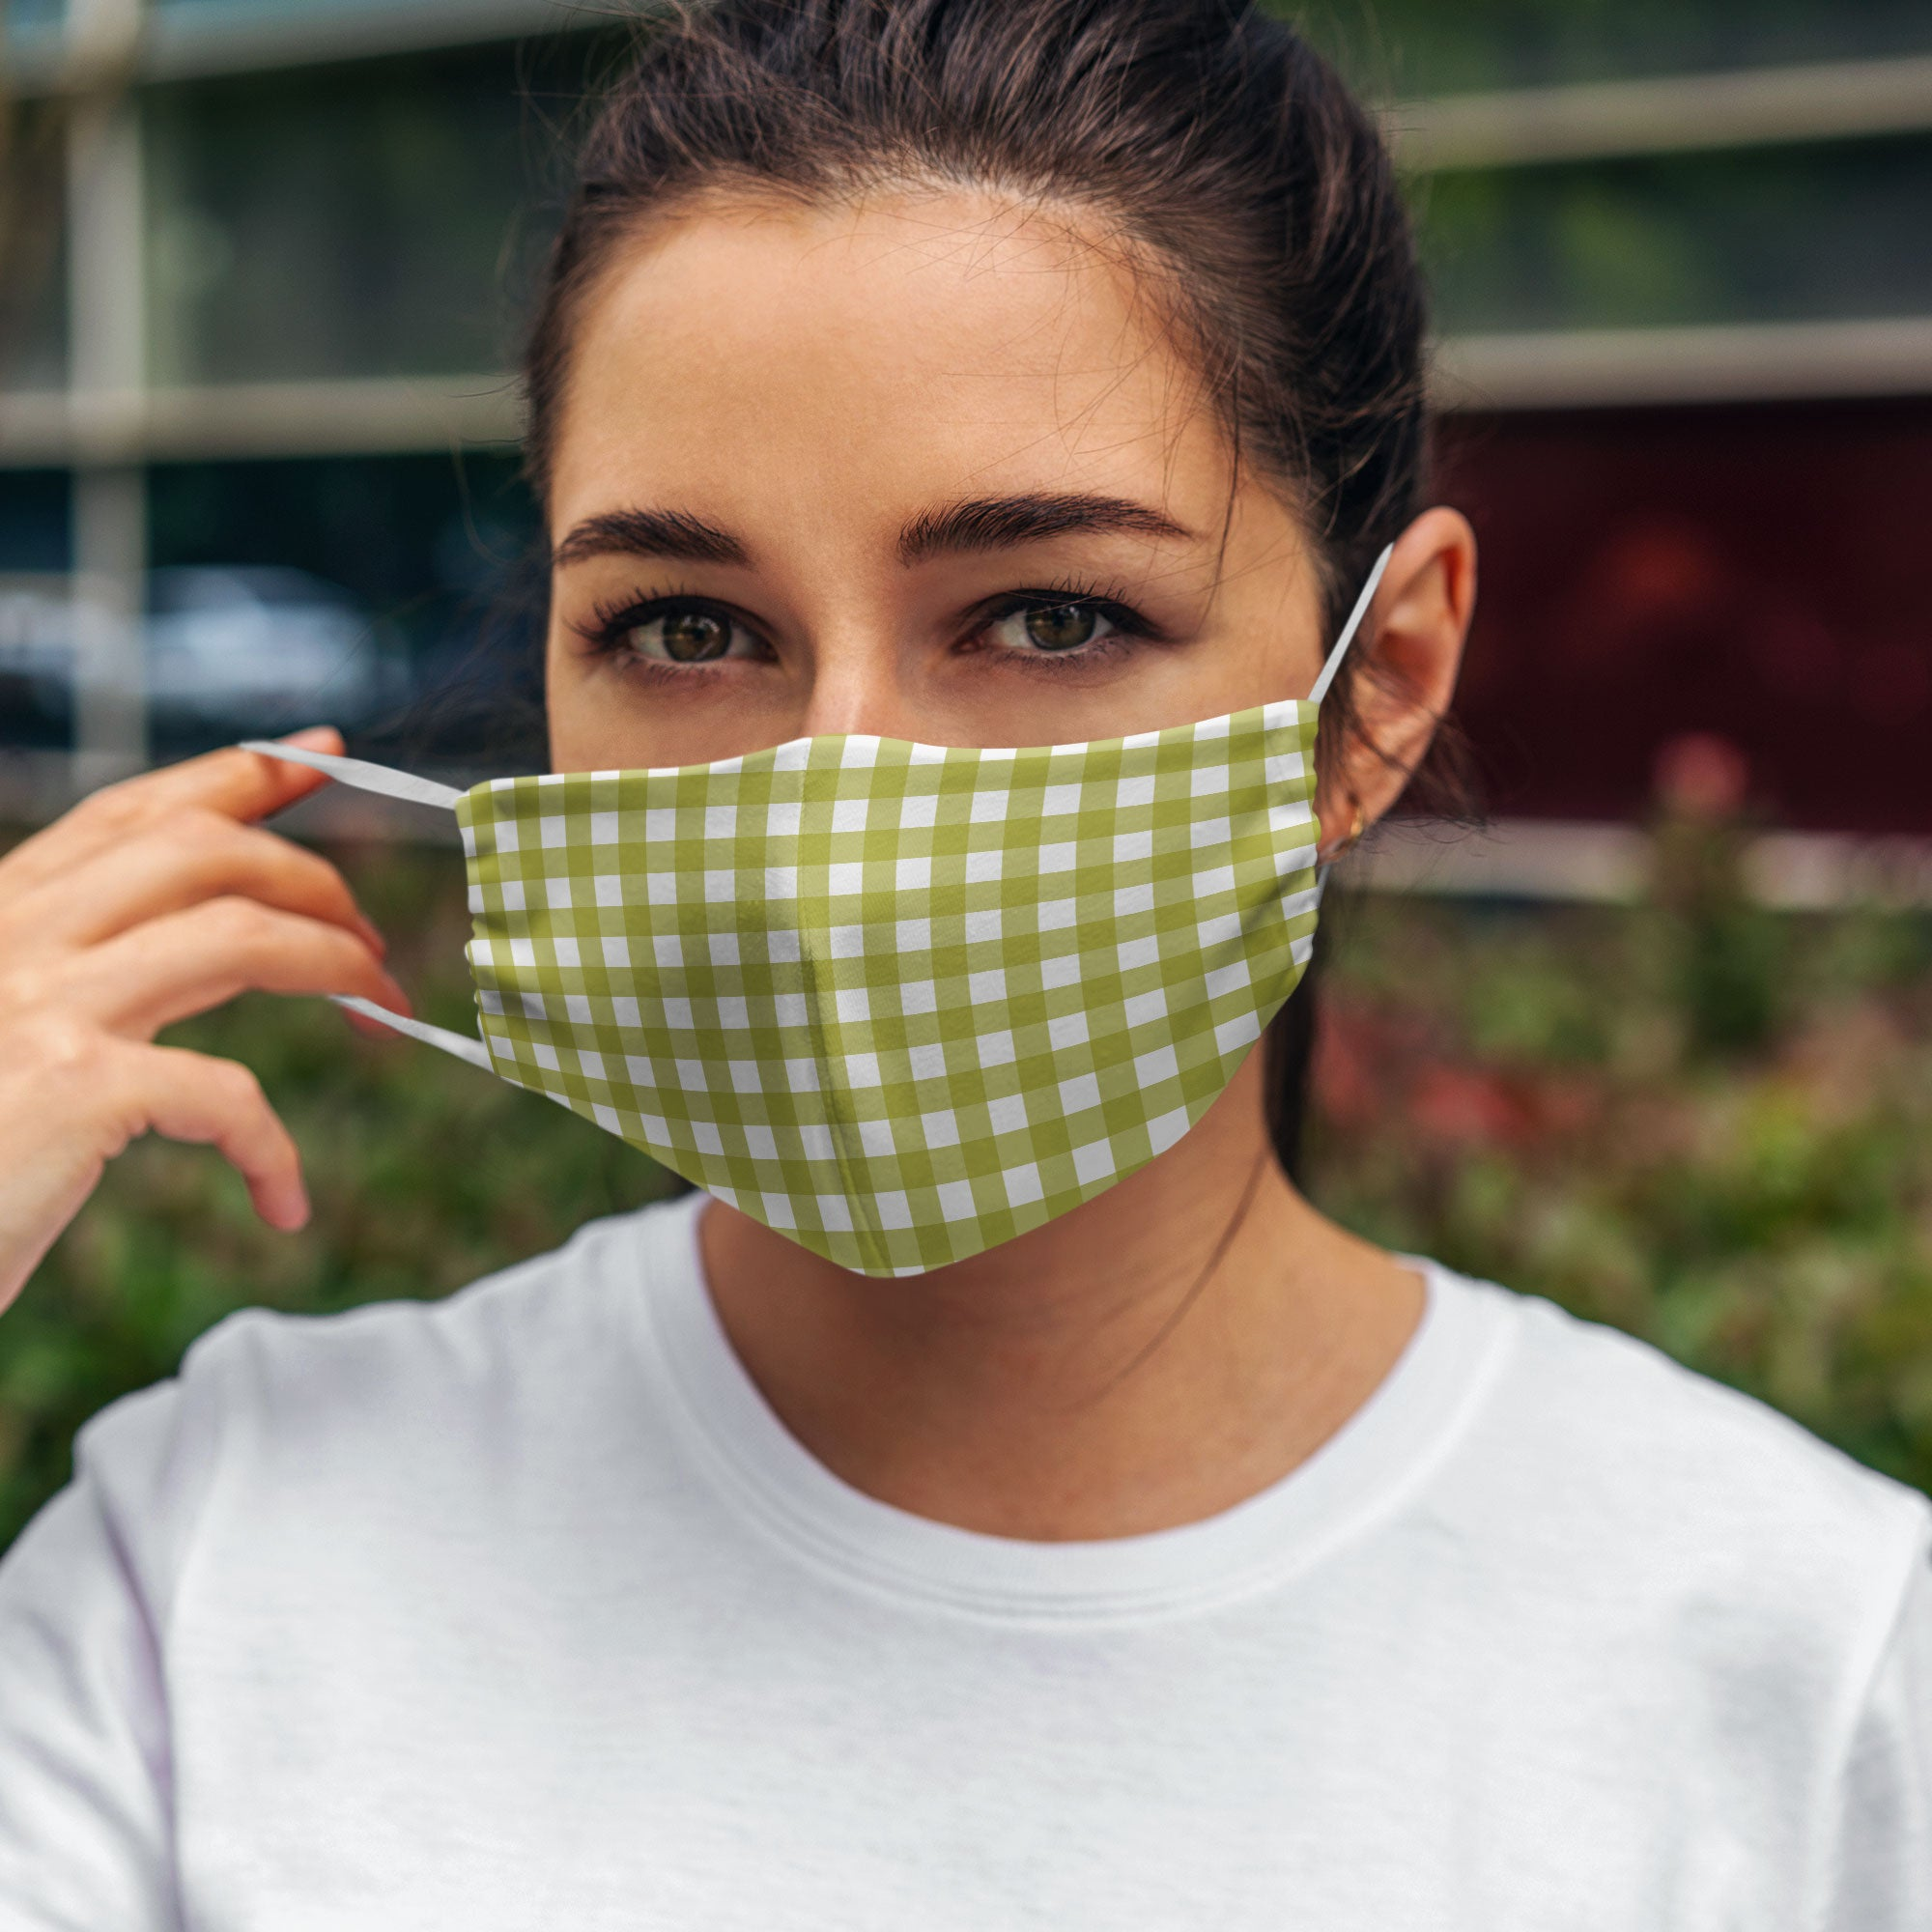 Printed Face Mask - Autumn Green Gingham Hand Drawn Design